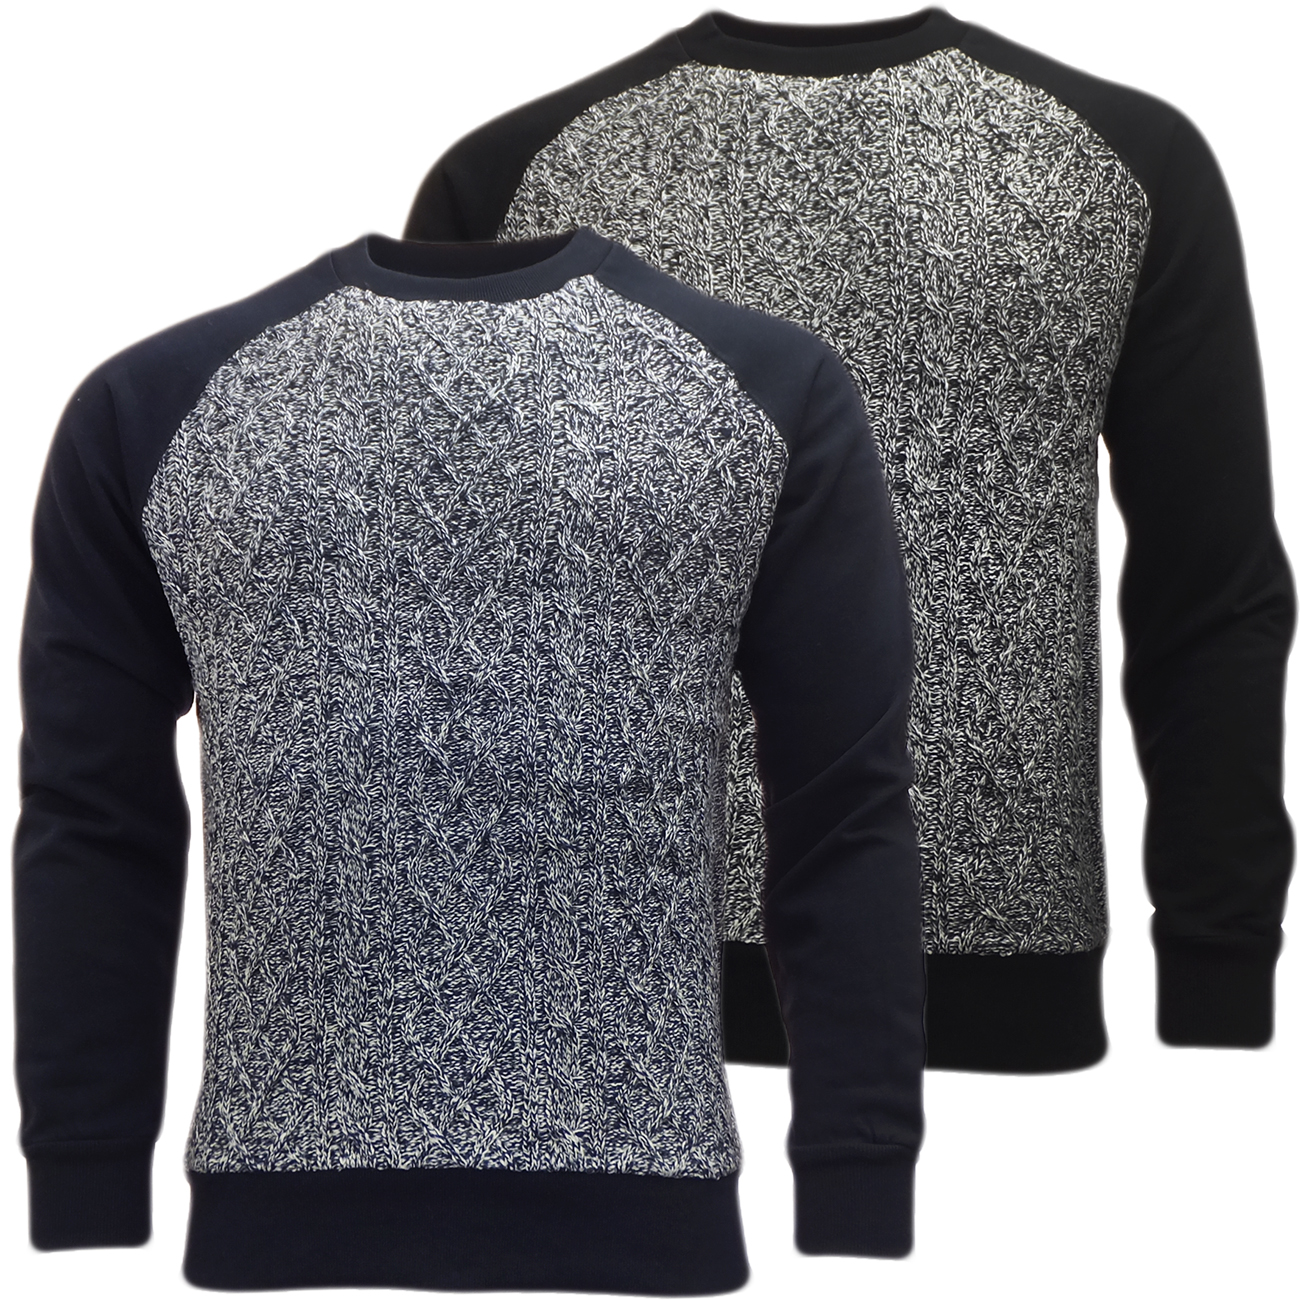 Brave Soul Knitted Jumper with Sweatshirt Back & Arms  'Chopen'